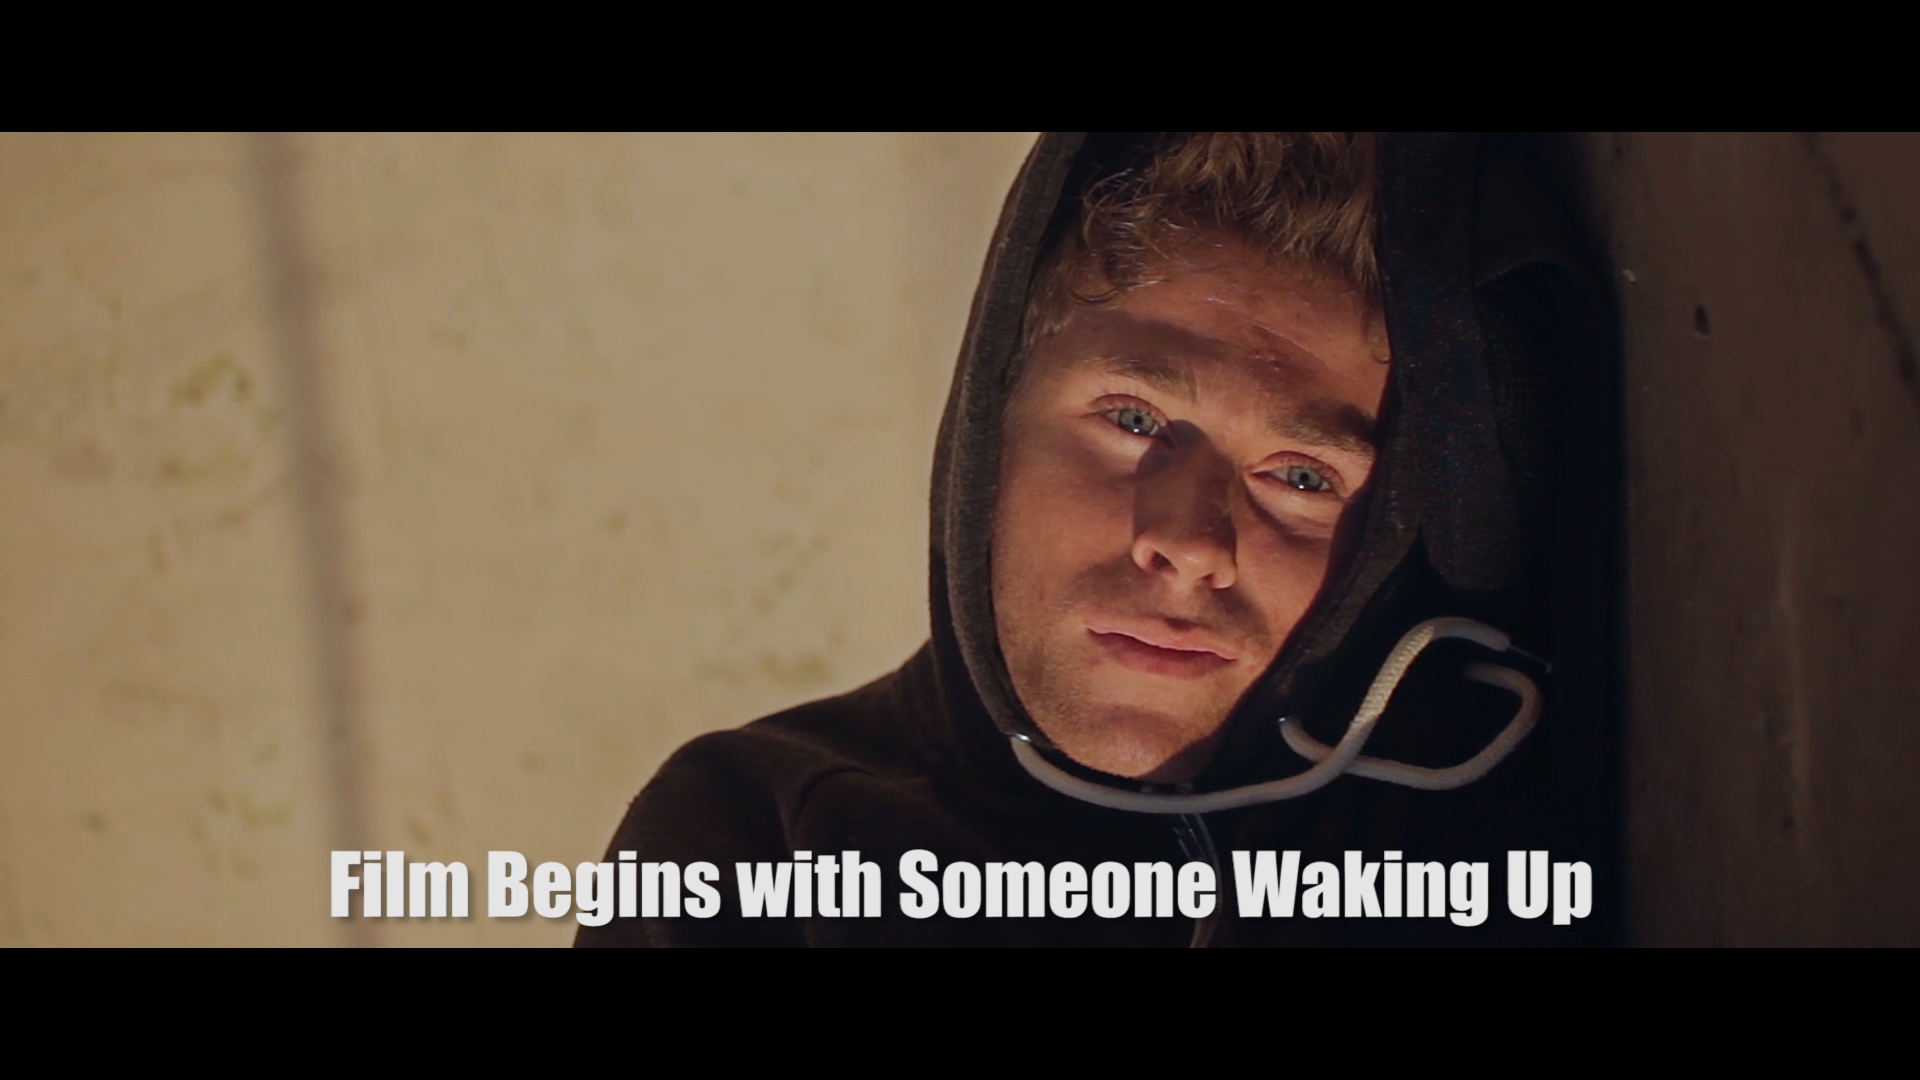 Filmmaking Cliches - Waking up.jpg